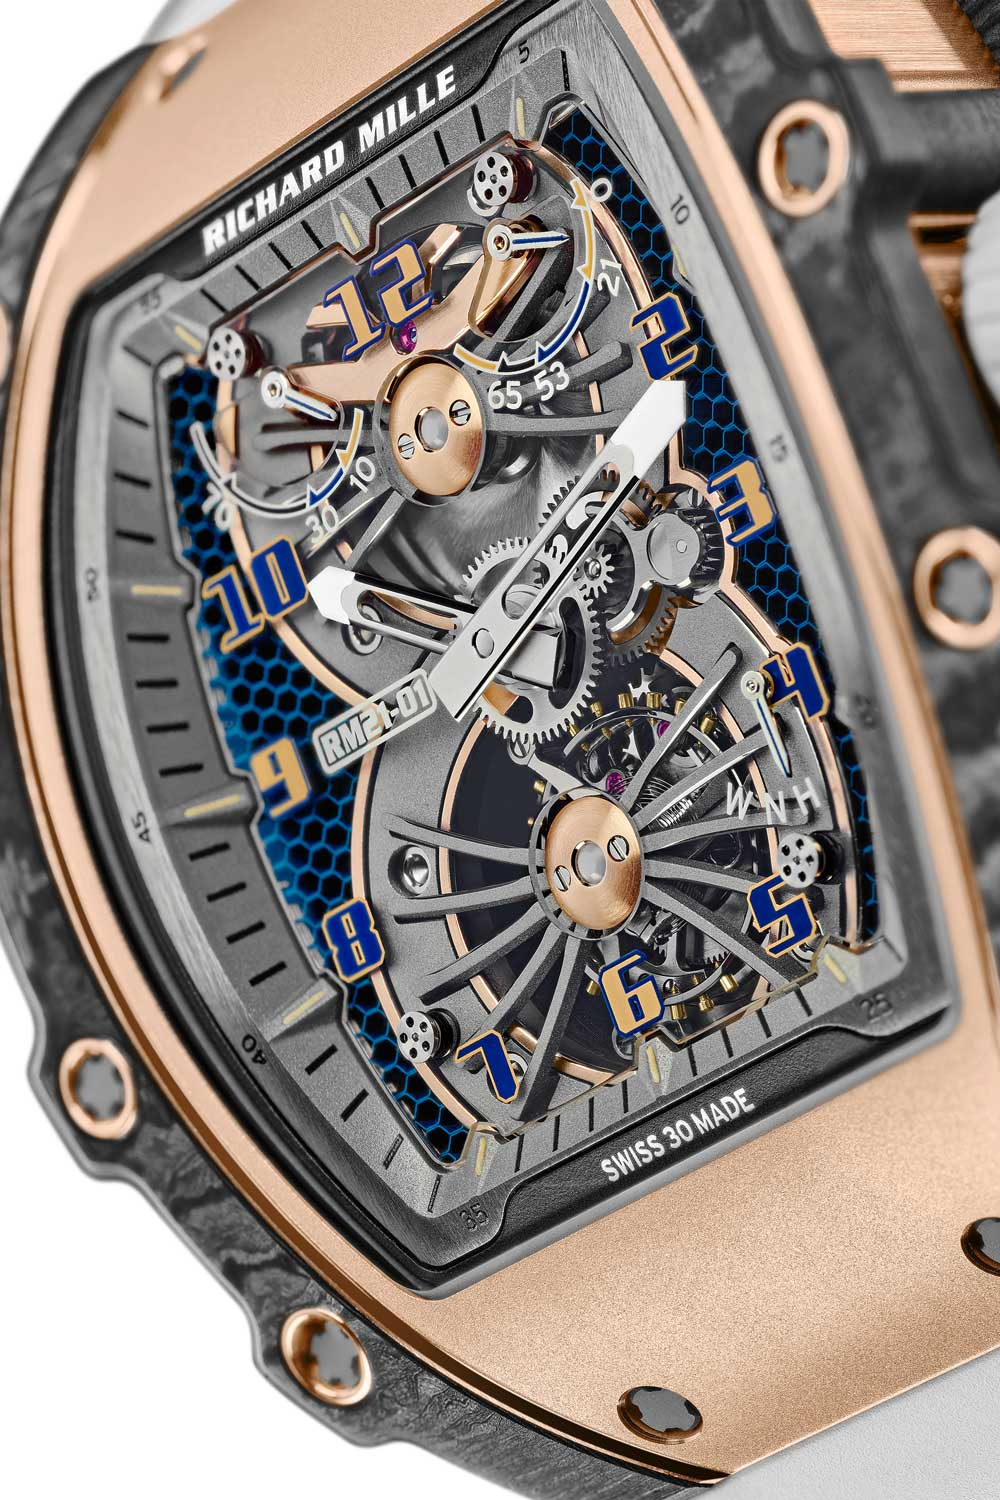 A torque indicator at one o'clock provides the information on the mainspring's tension, allowing an optimisation of the chronometric functioning of the movement.